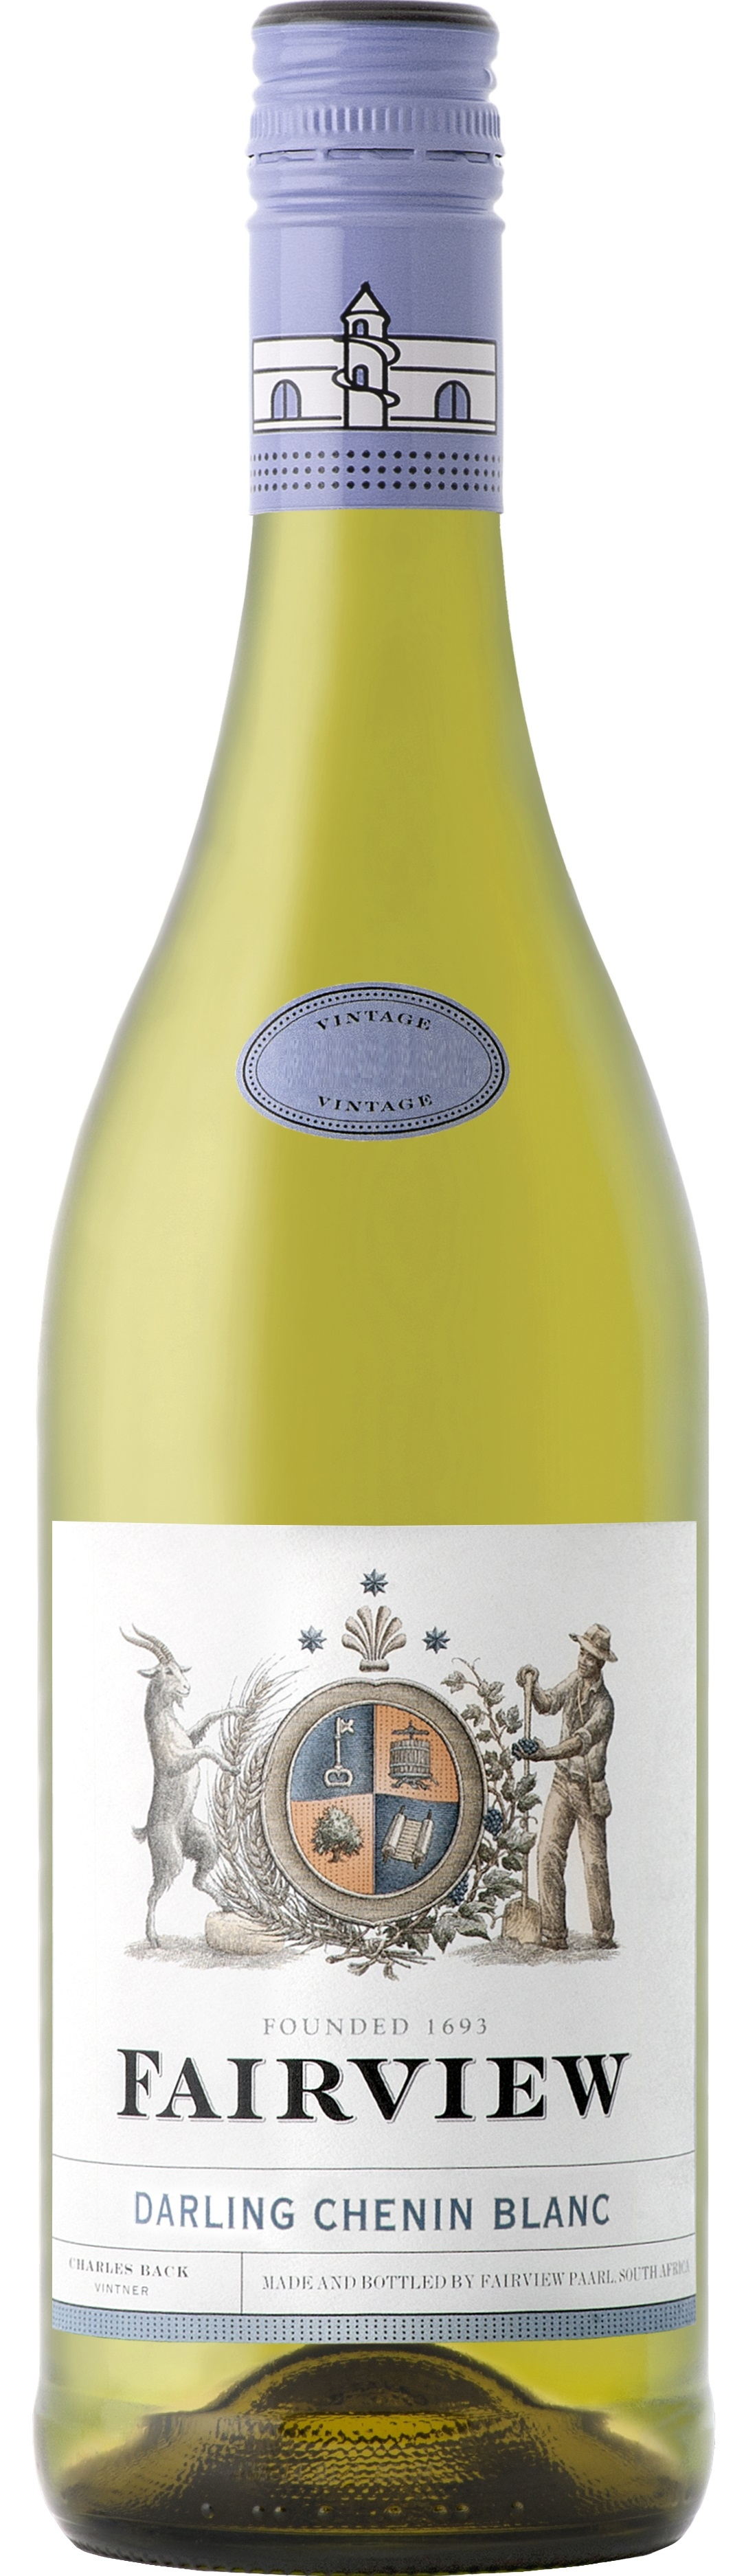 Fairview, Darling Chenin Blanc 2017